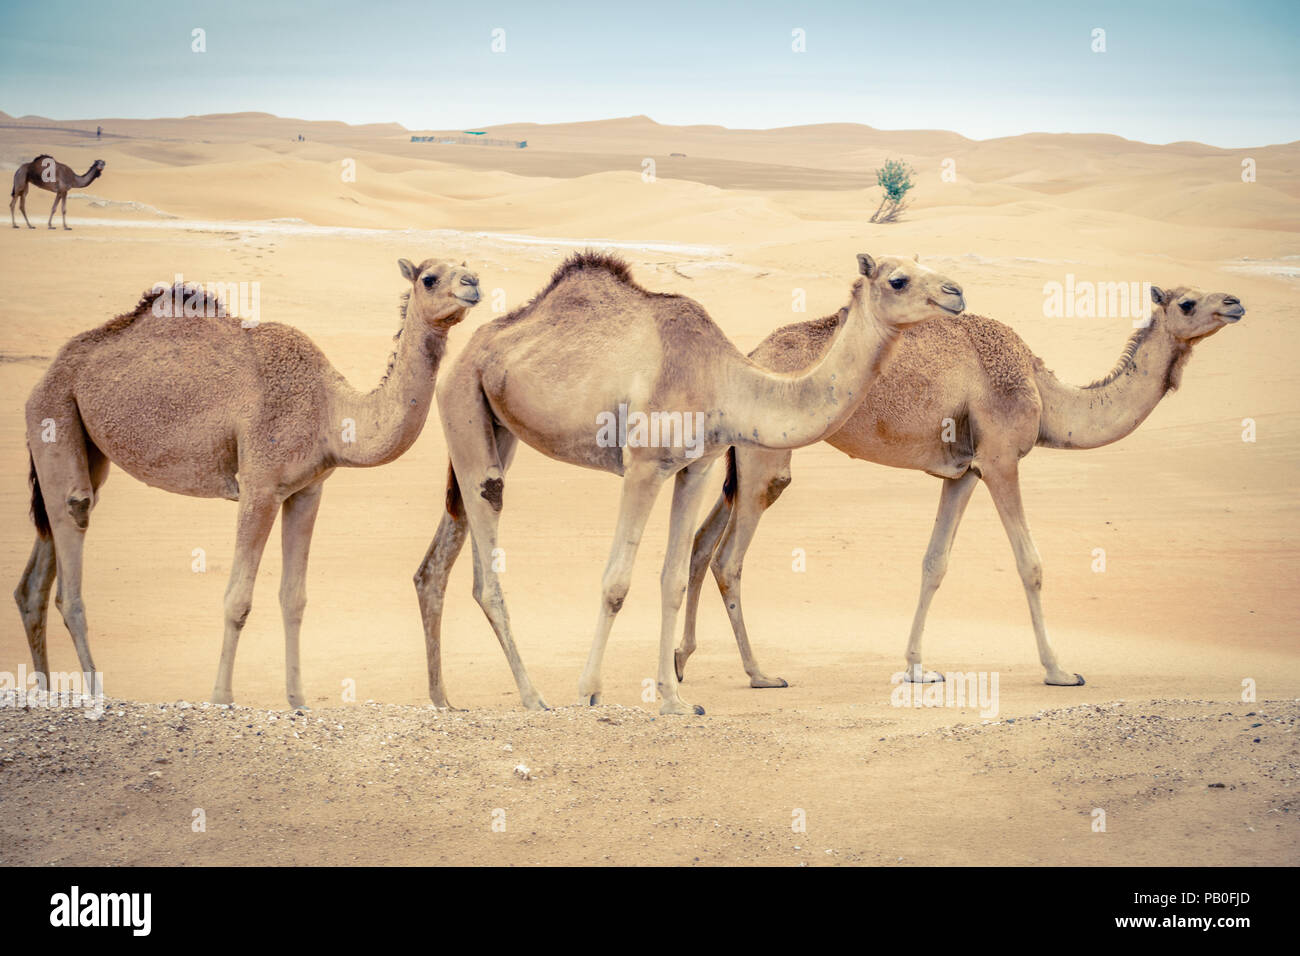 A herd of wild camels in the desert near Al Ain, UAE - Stock Image